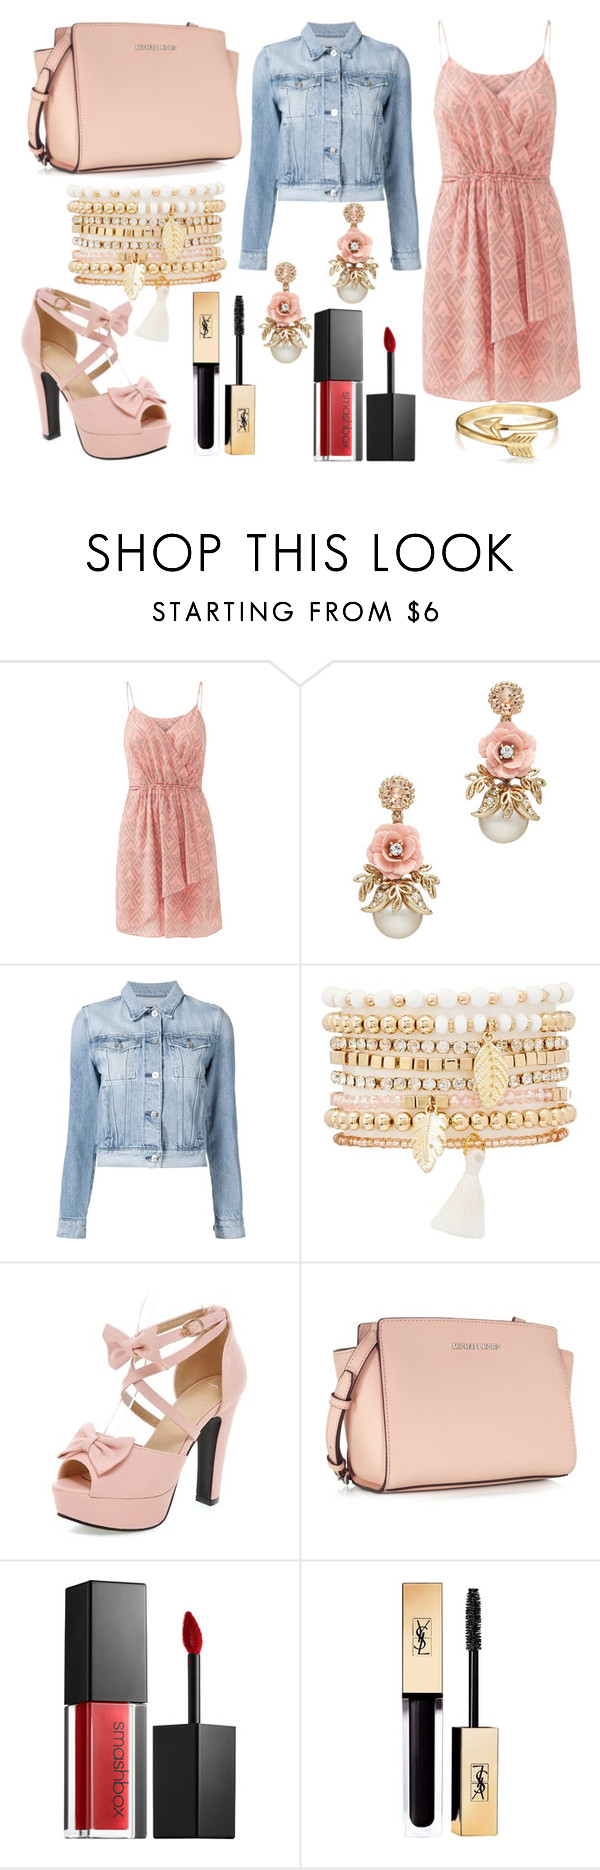 """""""#263"""" by glitterunicorns-are-awesome ❤ liked on Polyvore featuring Rebecca Taylor, 3x1, Charlotte Russe, Michael Kors, Smashbox, Yves Saint Laurent and Bling Jewelry"""